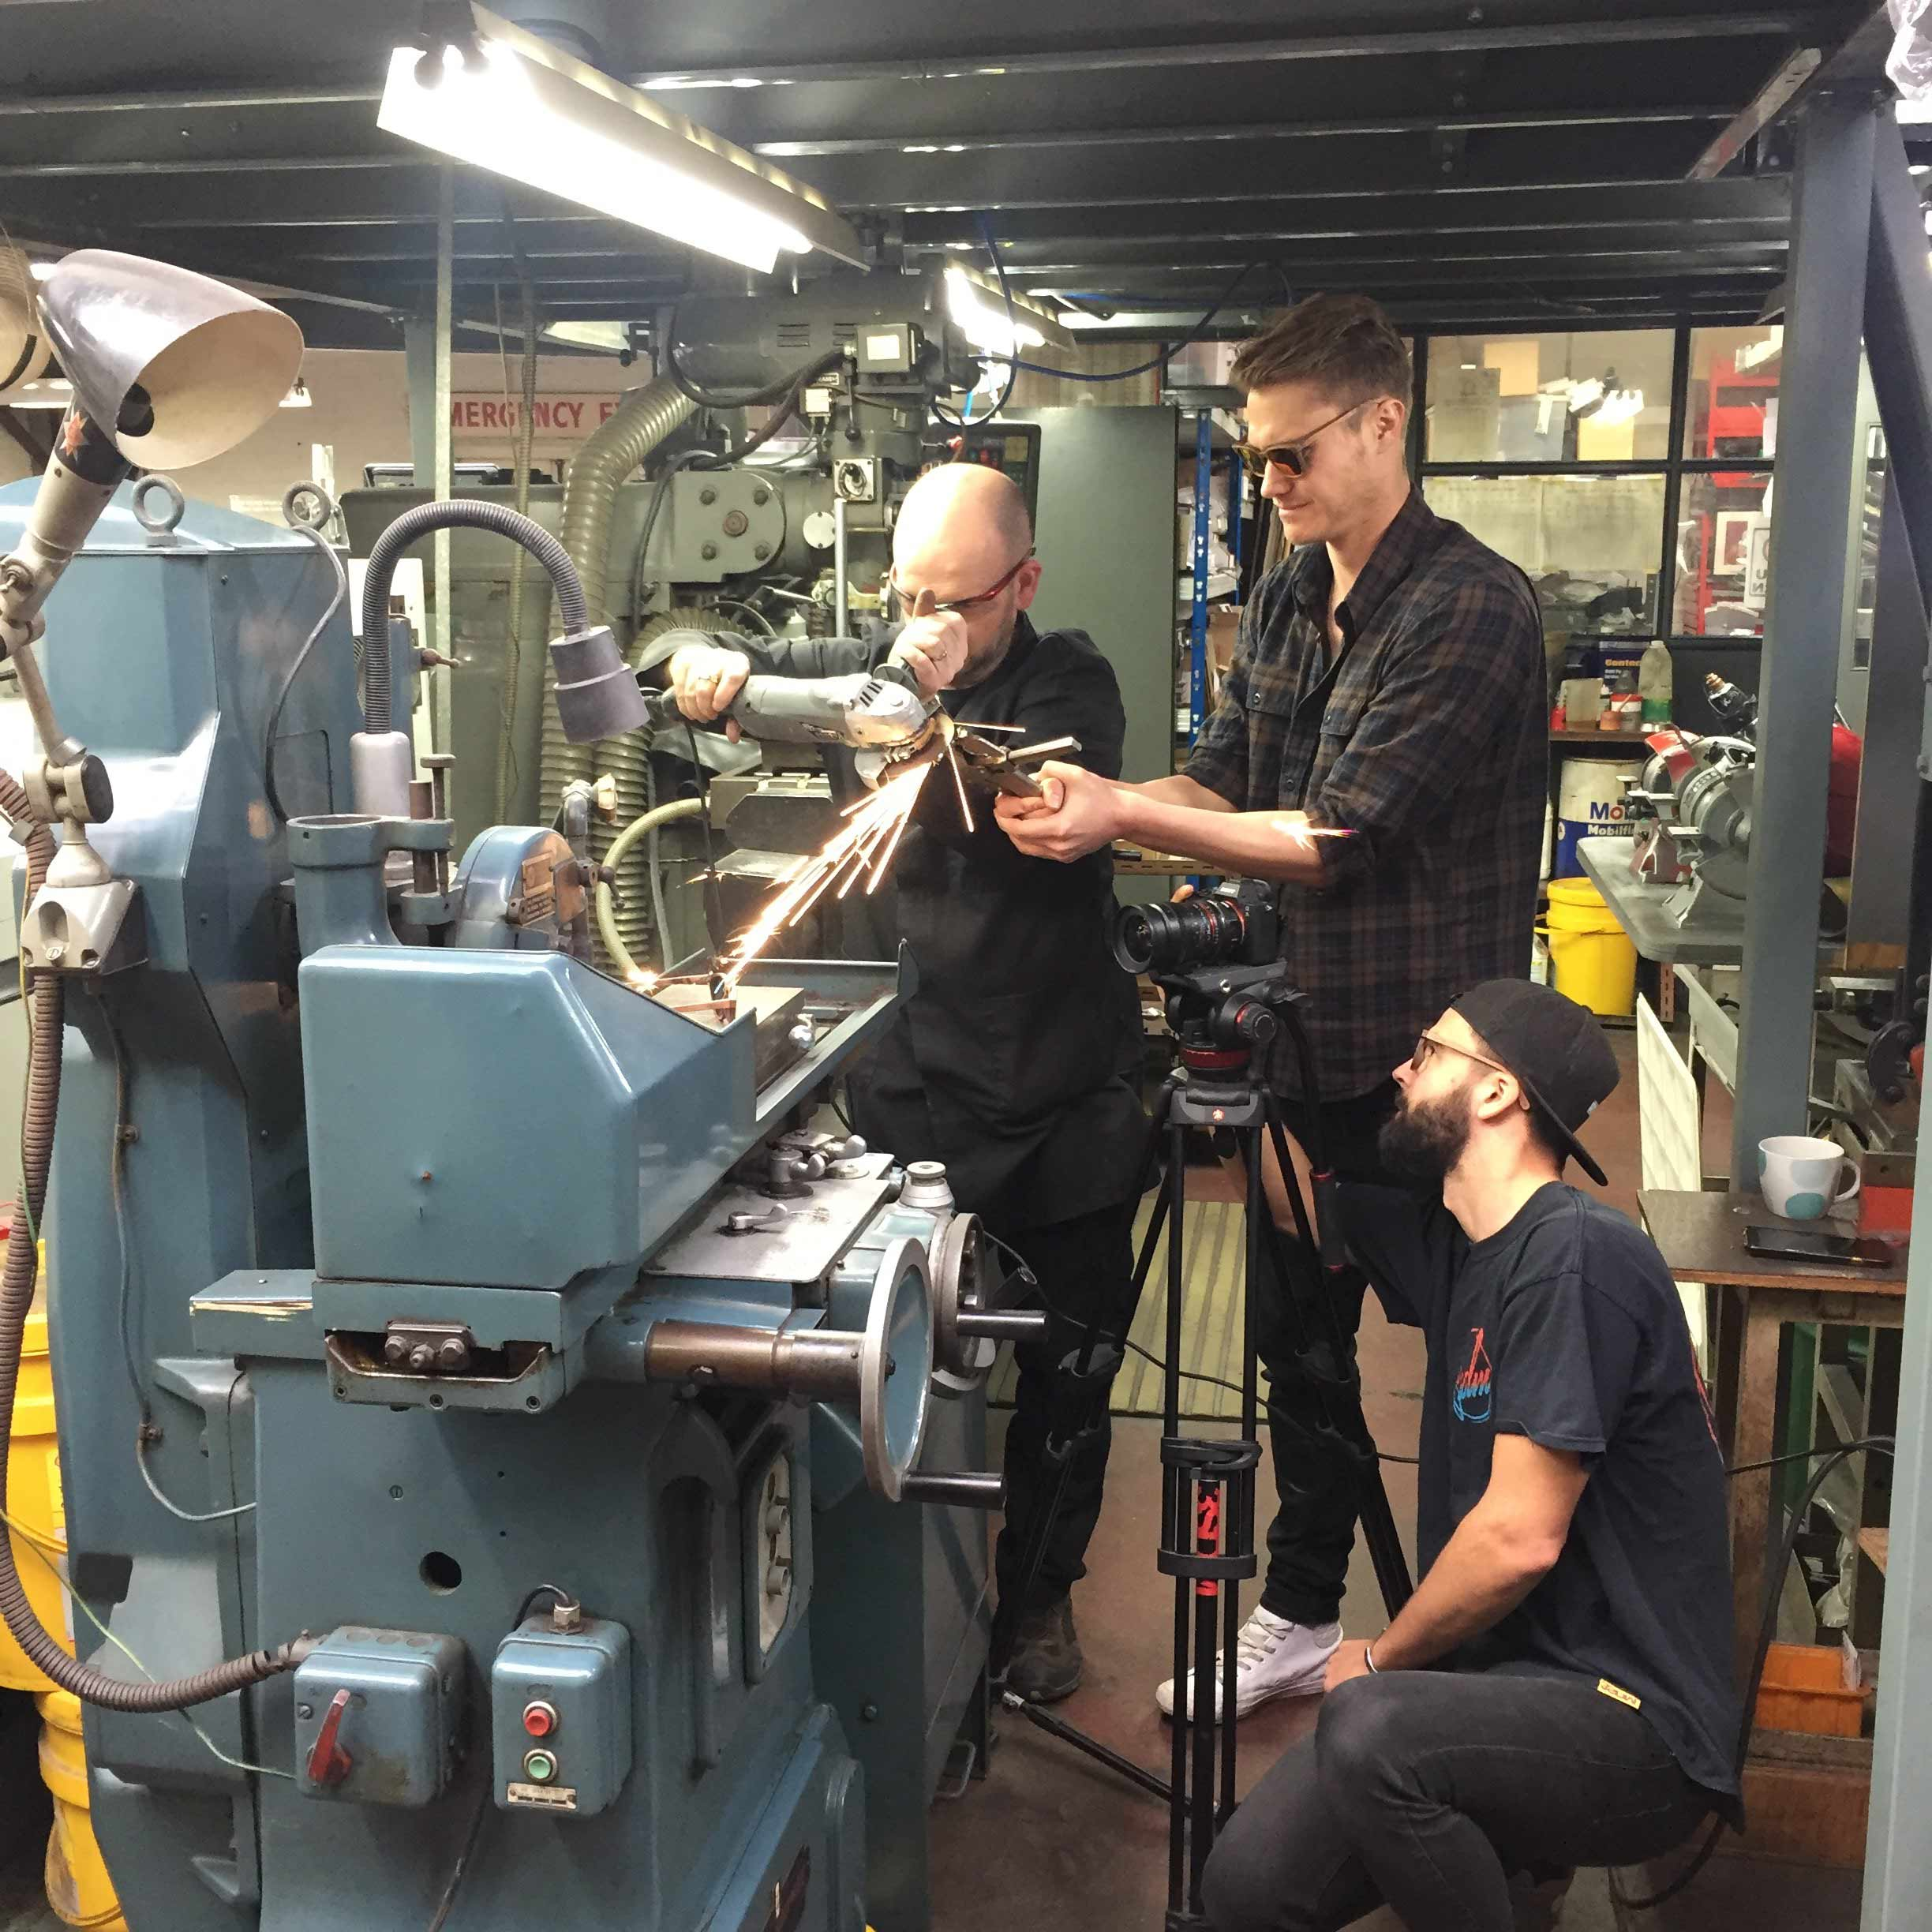 Image: Capturing sparks on a Jabrock Shoot - In The Lab.